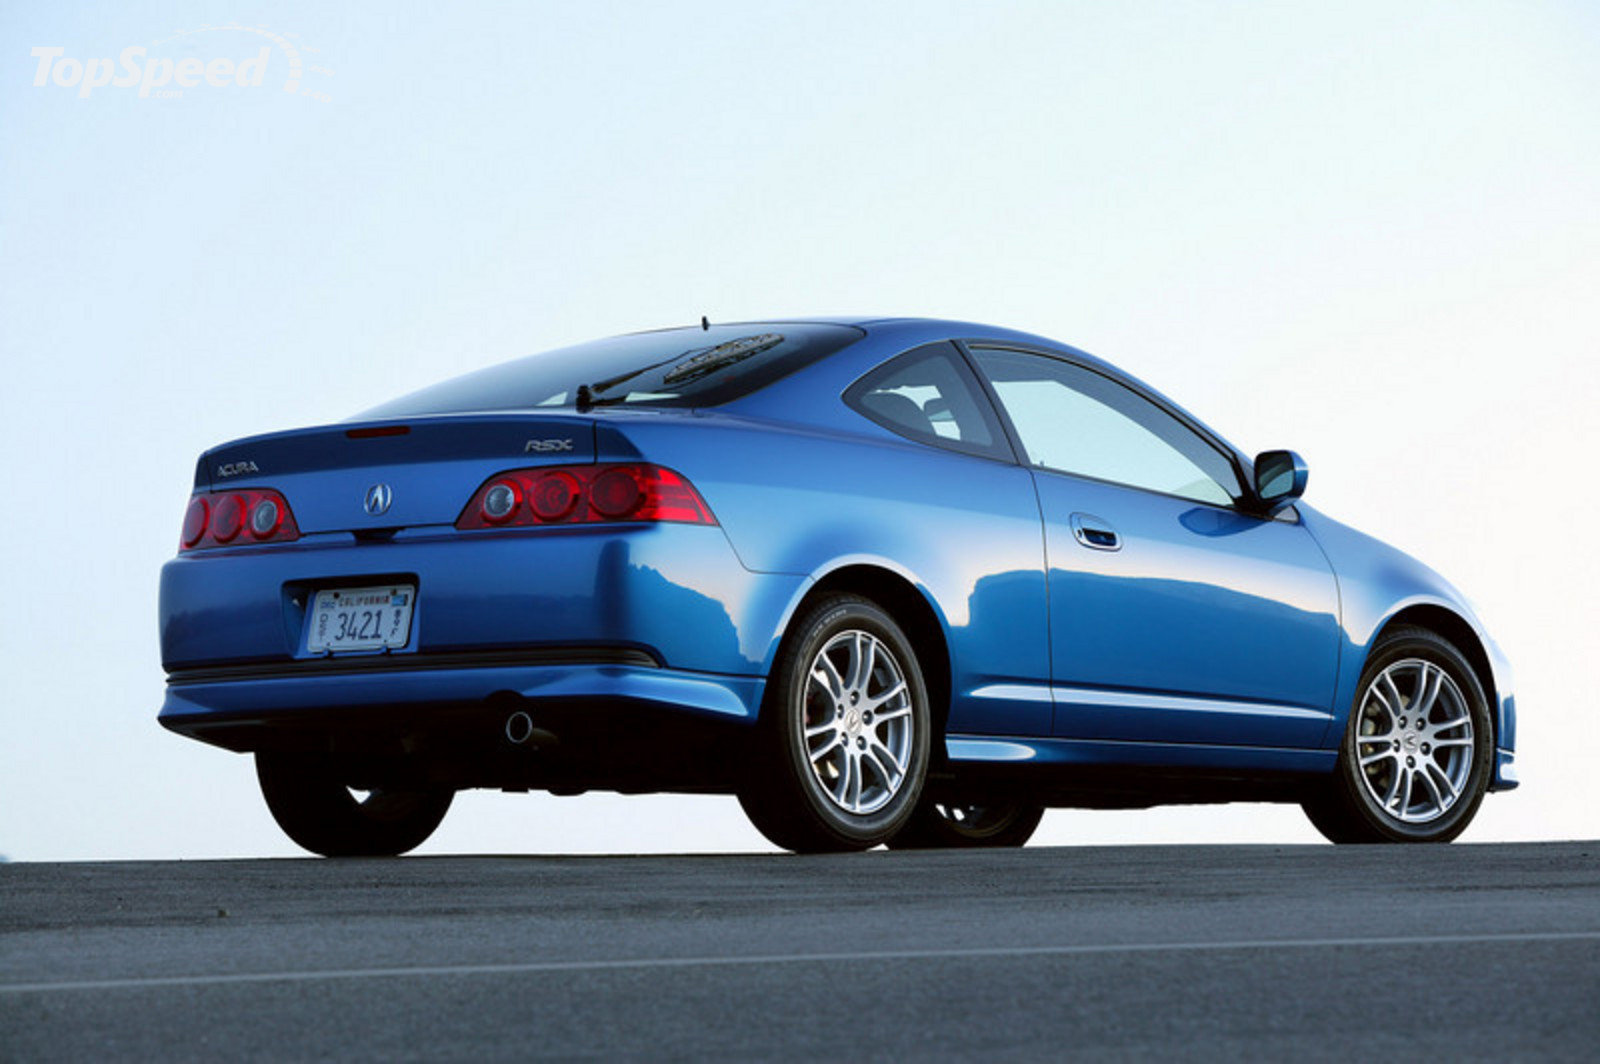 2006 acura rsx picture 97673 car review top speed. Black Bedroom Furniture Sets. Home Design Ideas